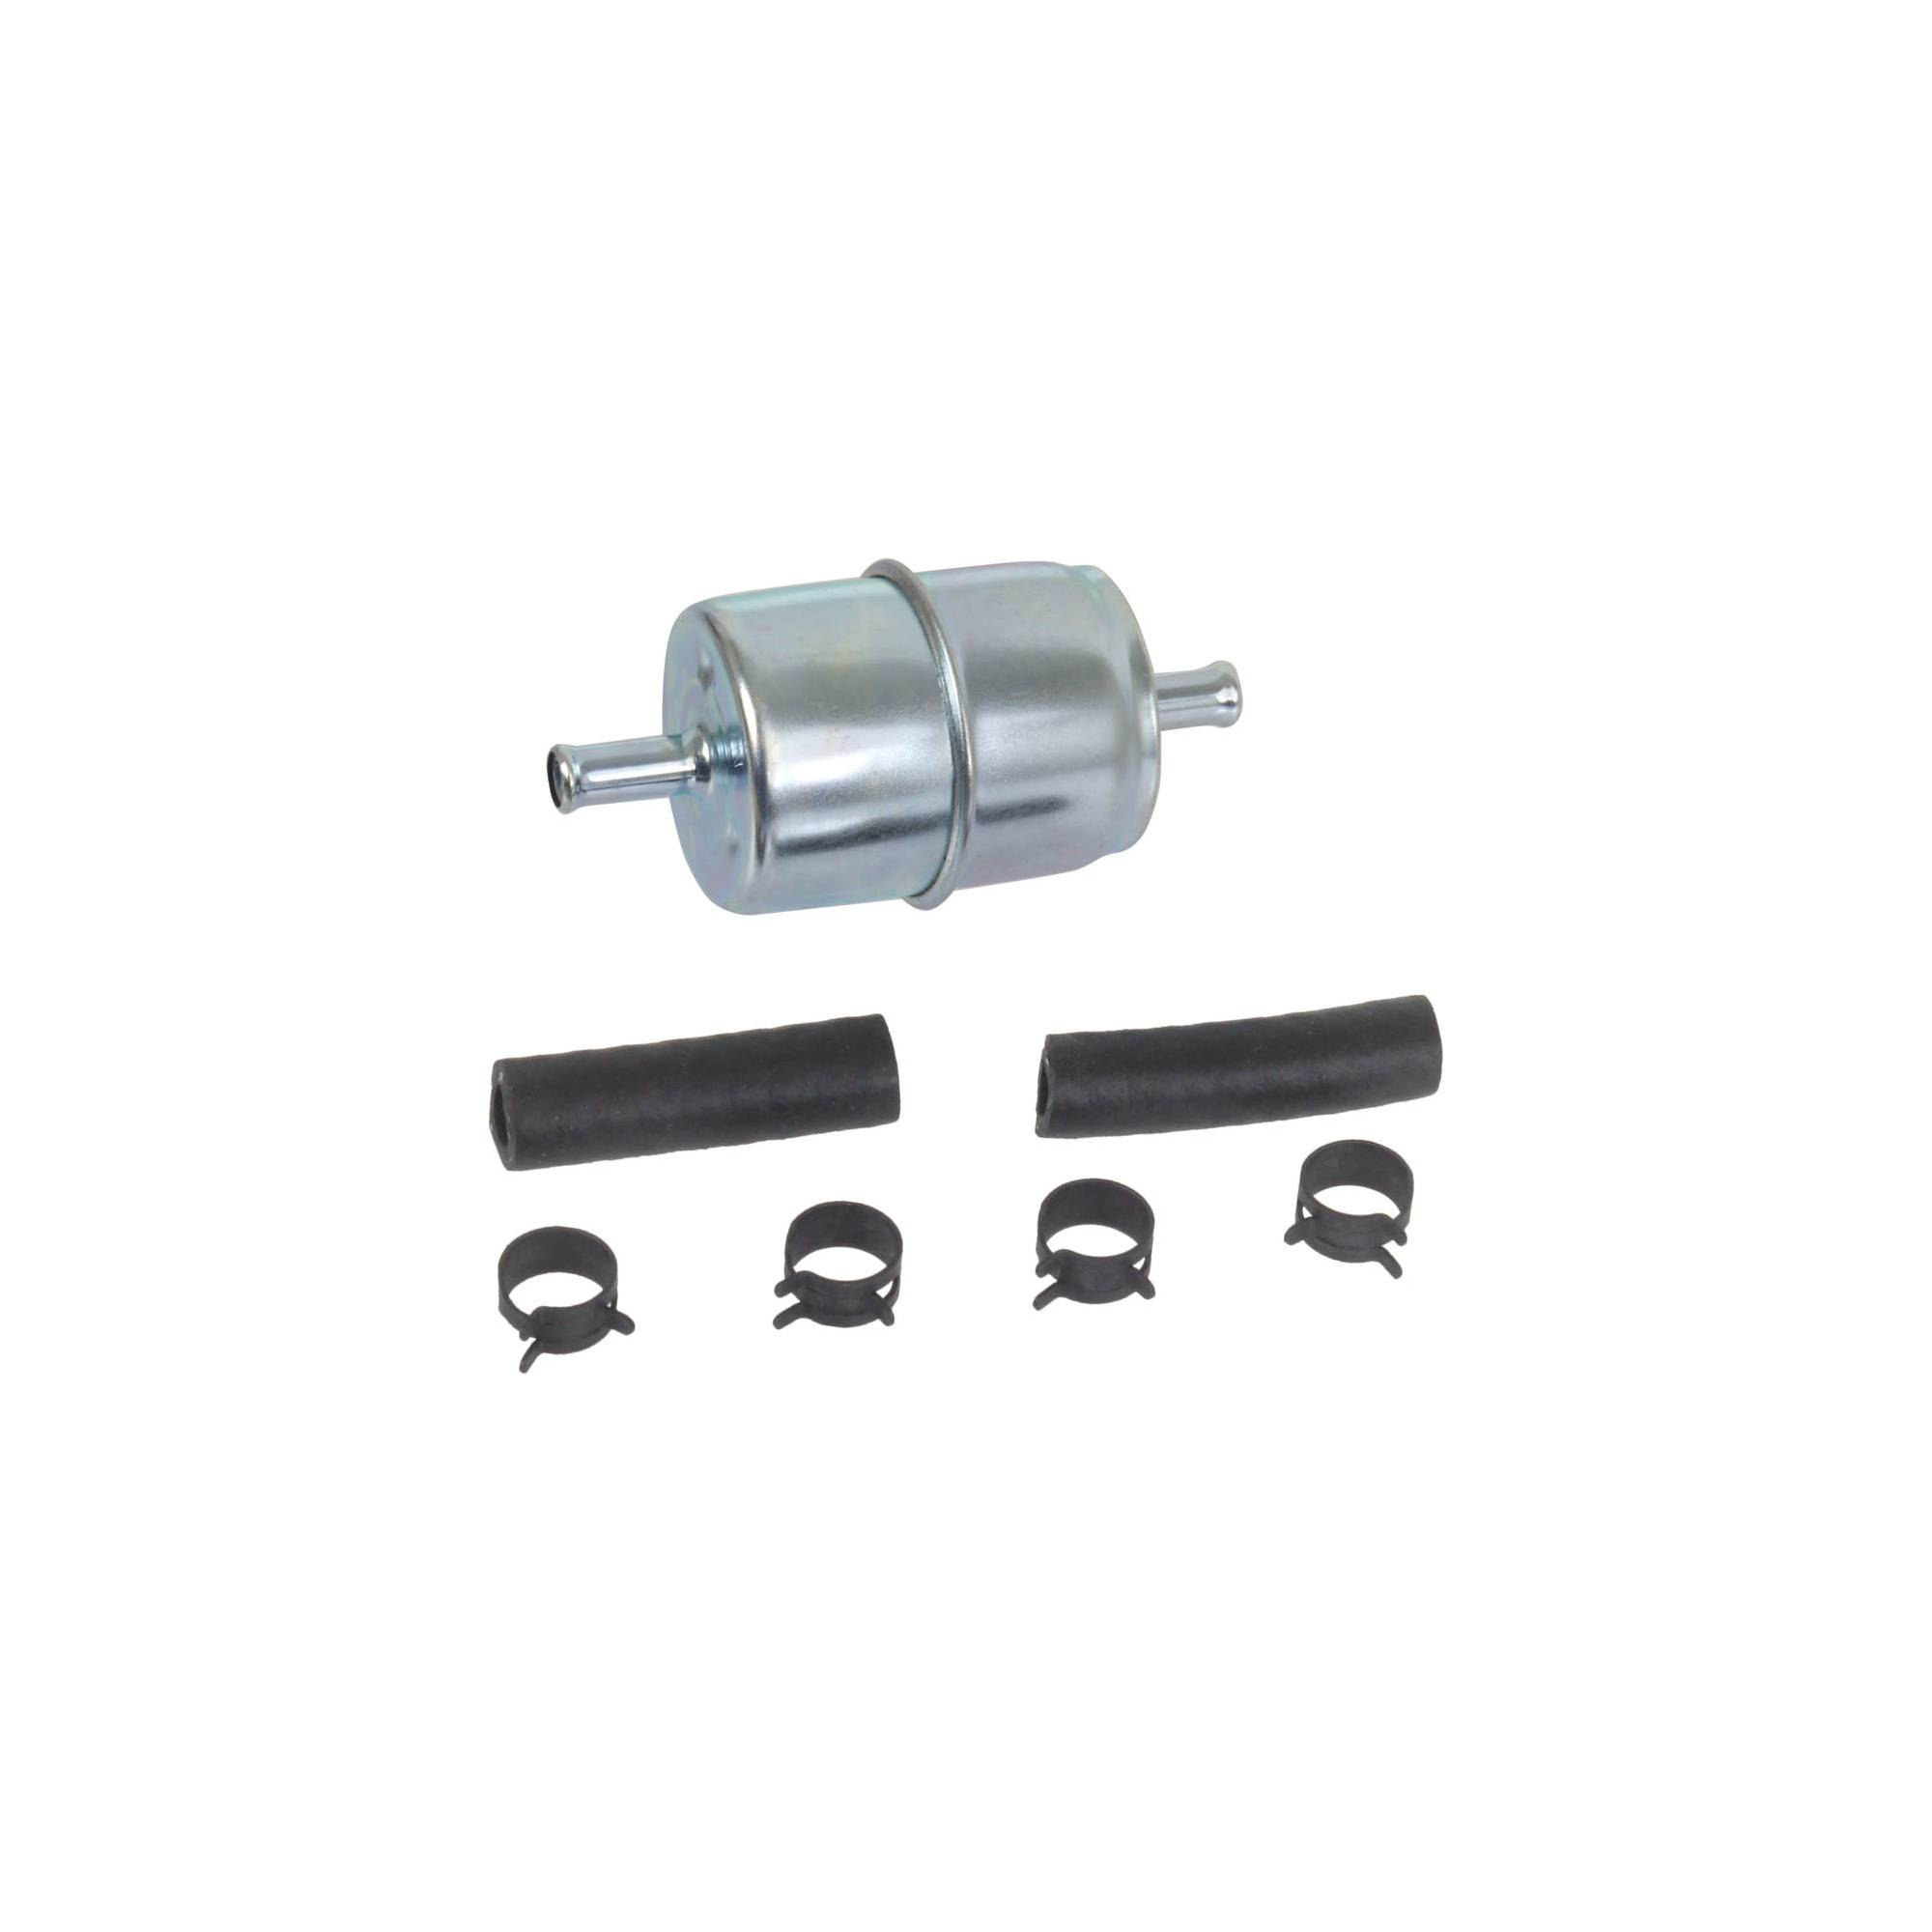 macs auto parts premier products 44 34795 ford mustang fuel filter in line type all 6 cylinder and v 8 engines hastings Mustang Gas Cap